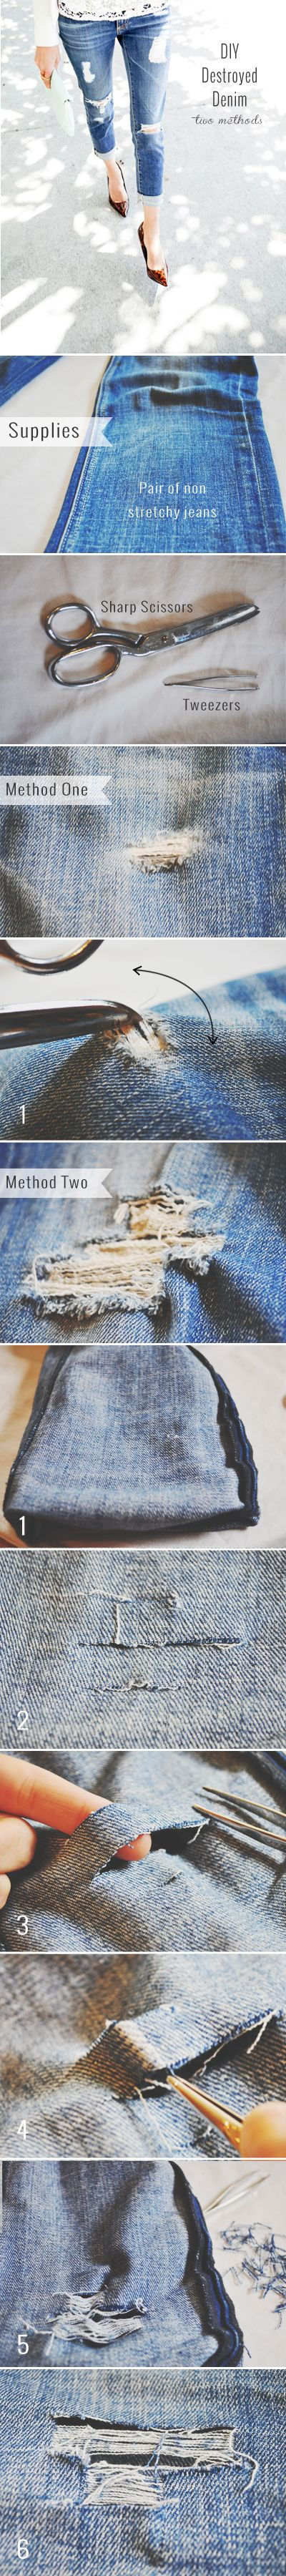 #DIY #DestroyedDenim #Jeans